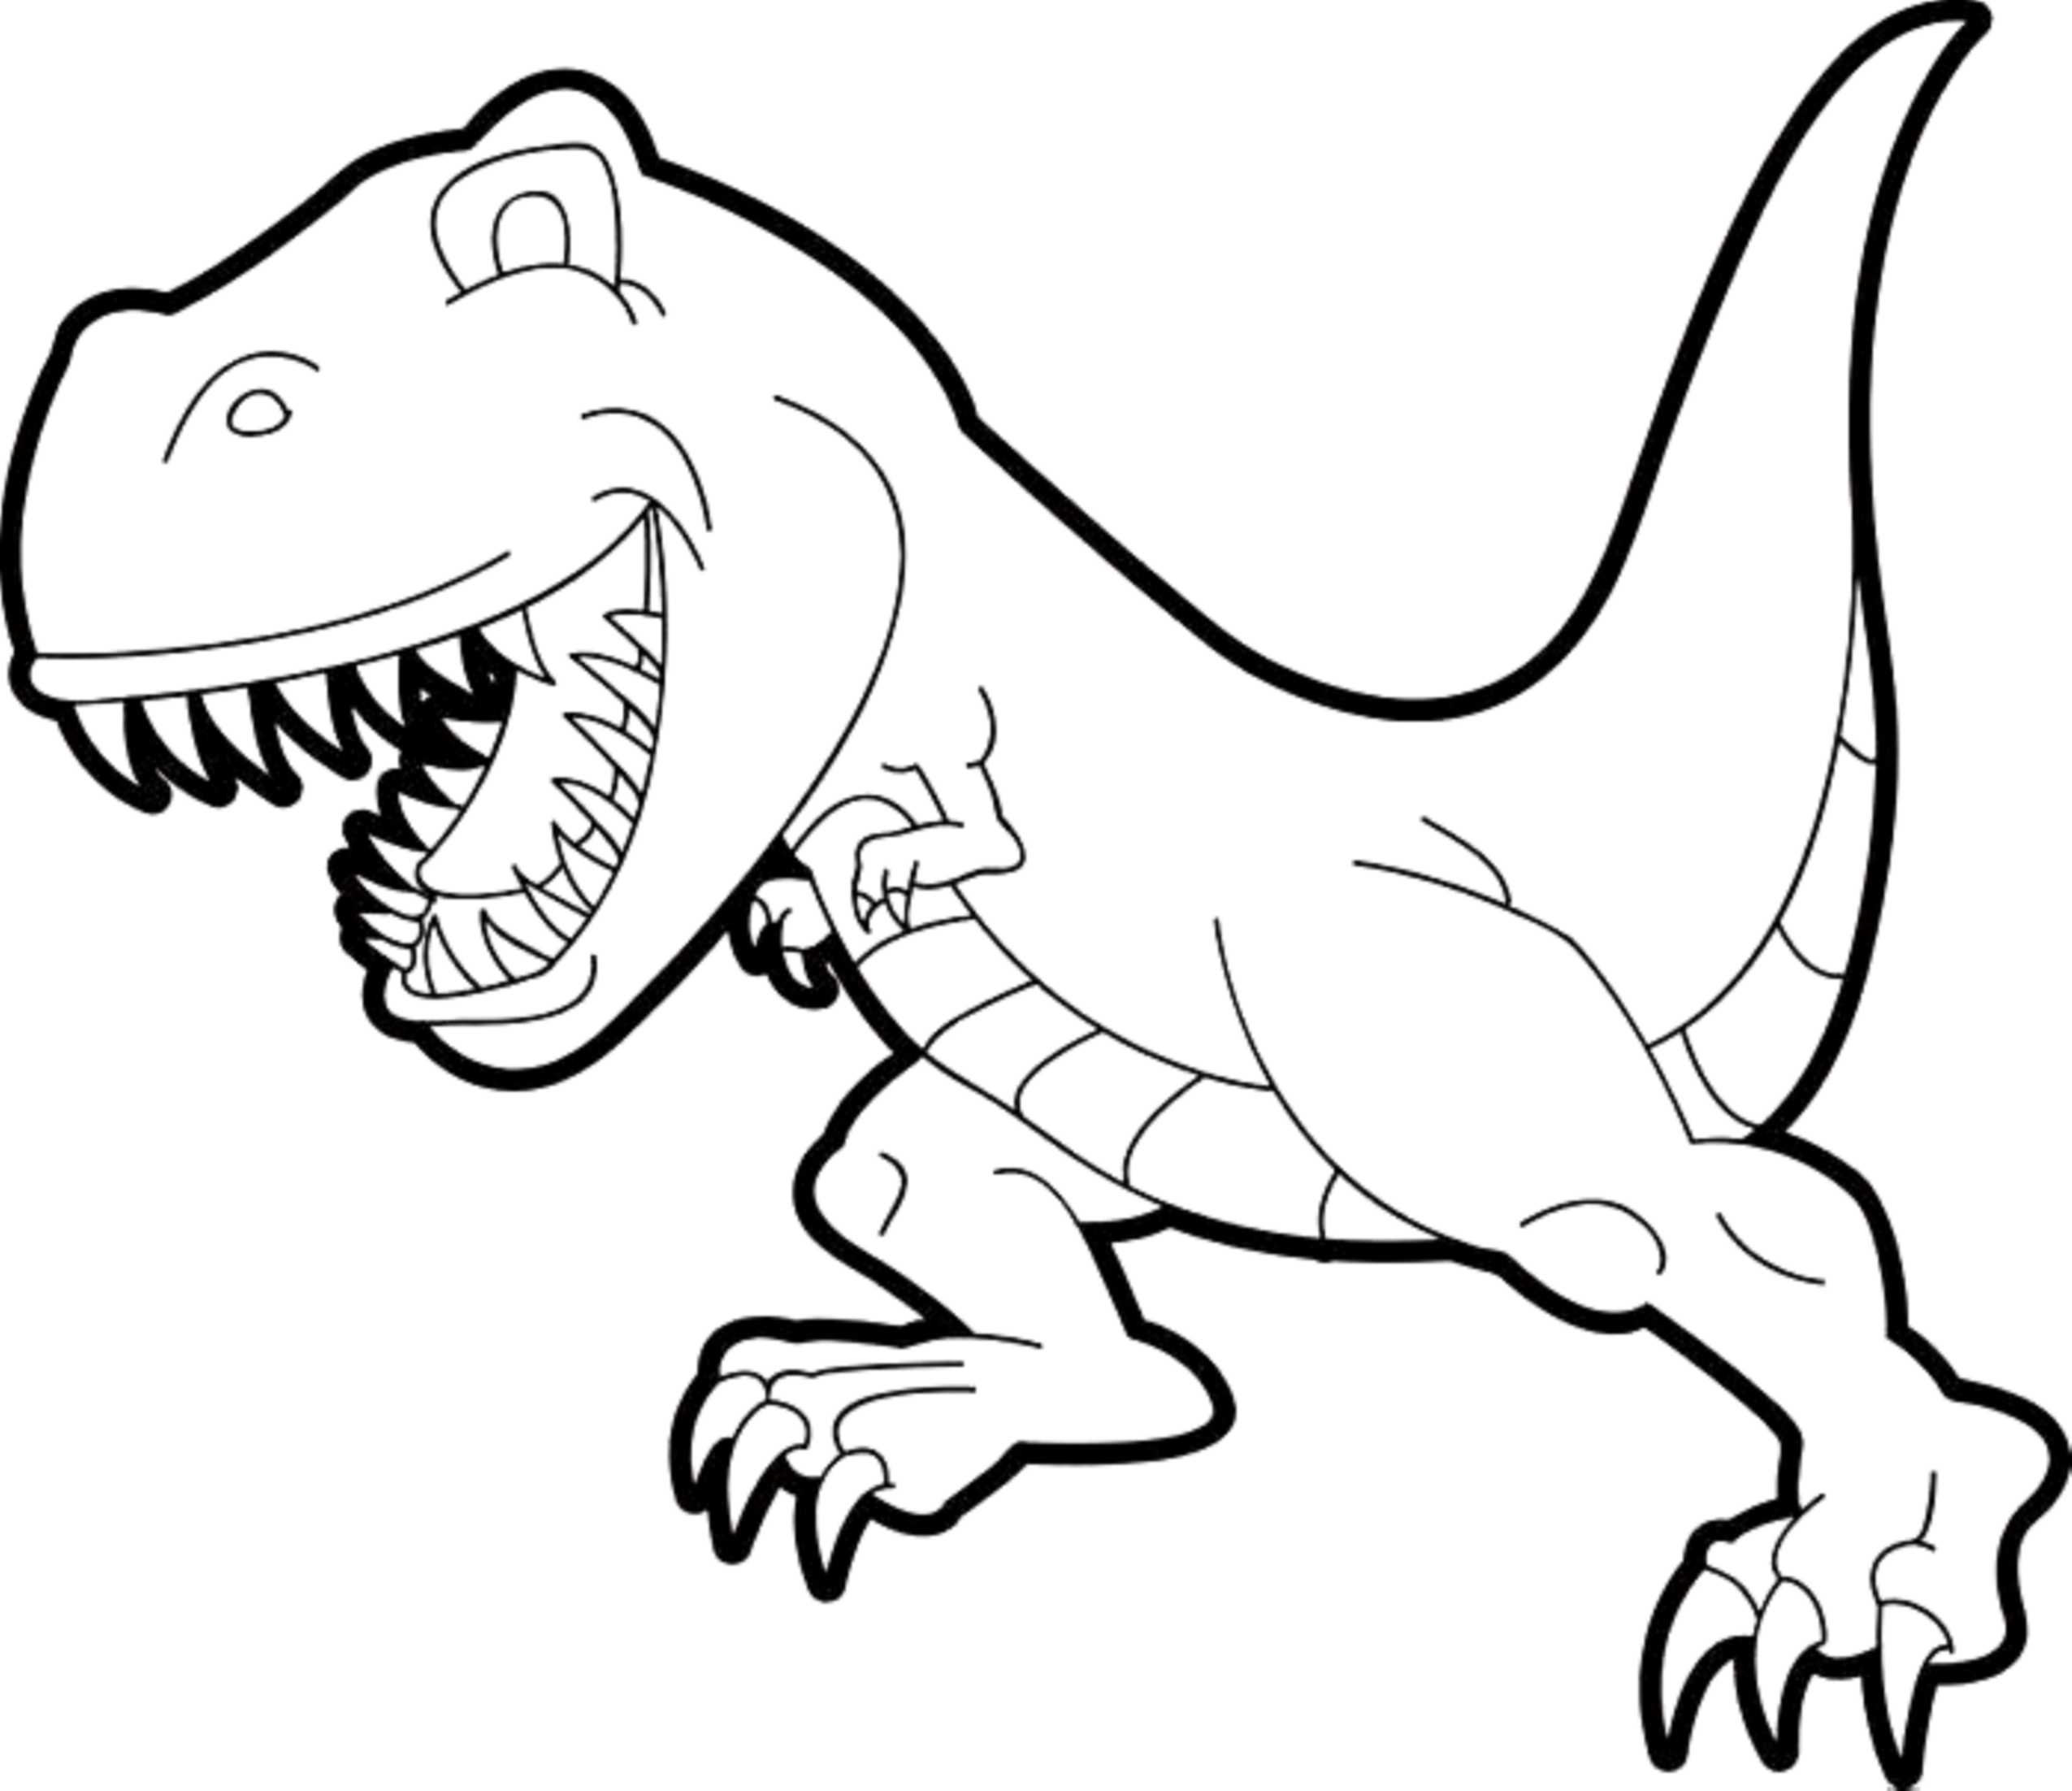 dinosaurs coloring page coloring pages dinosaur free printable coloring pages page coloring dinosaurs